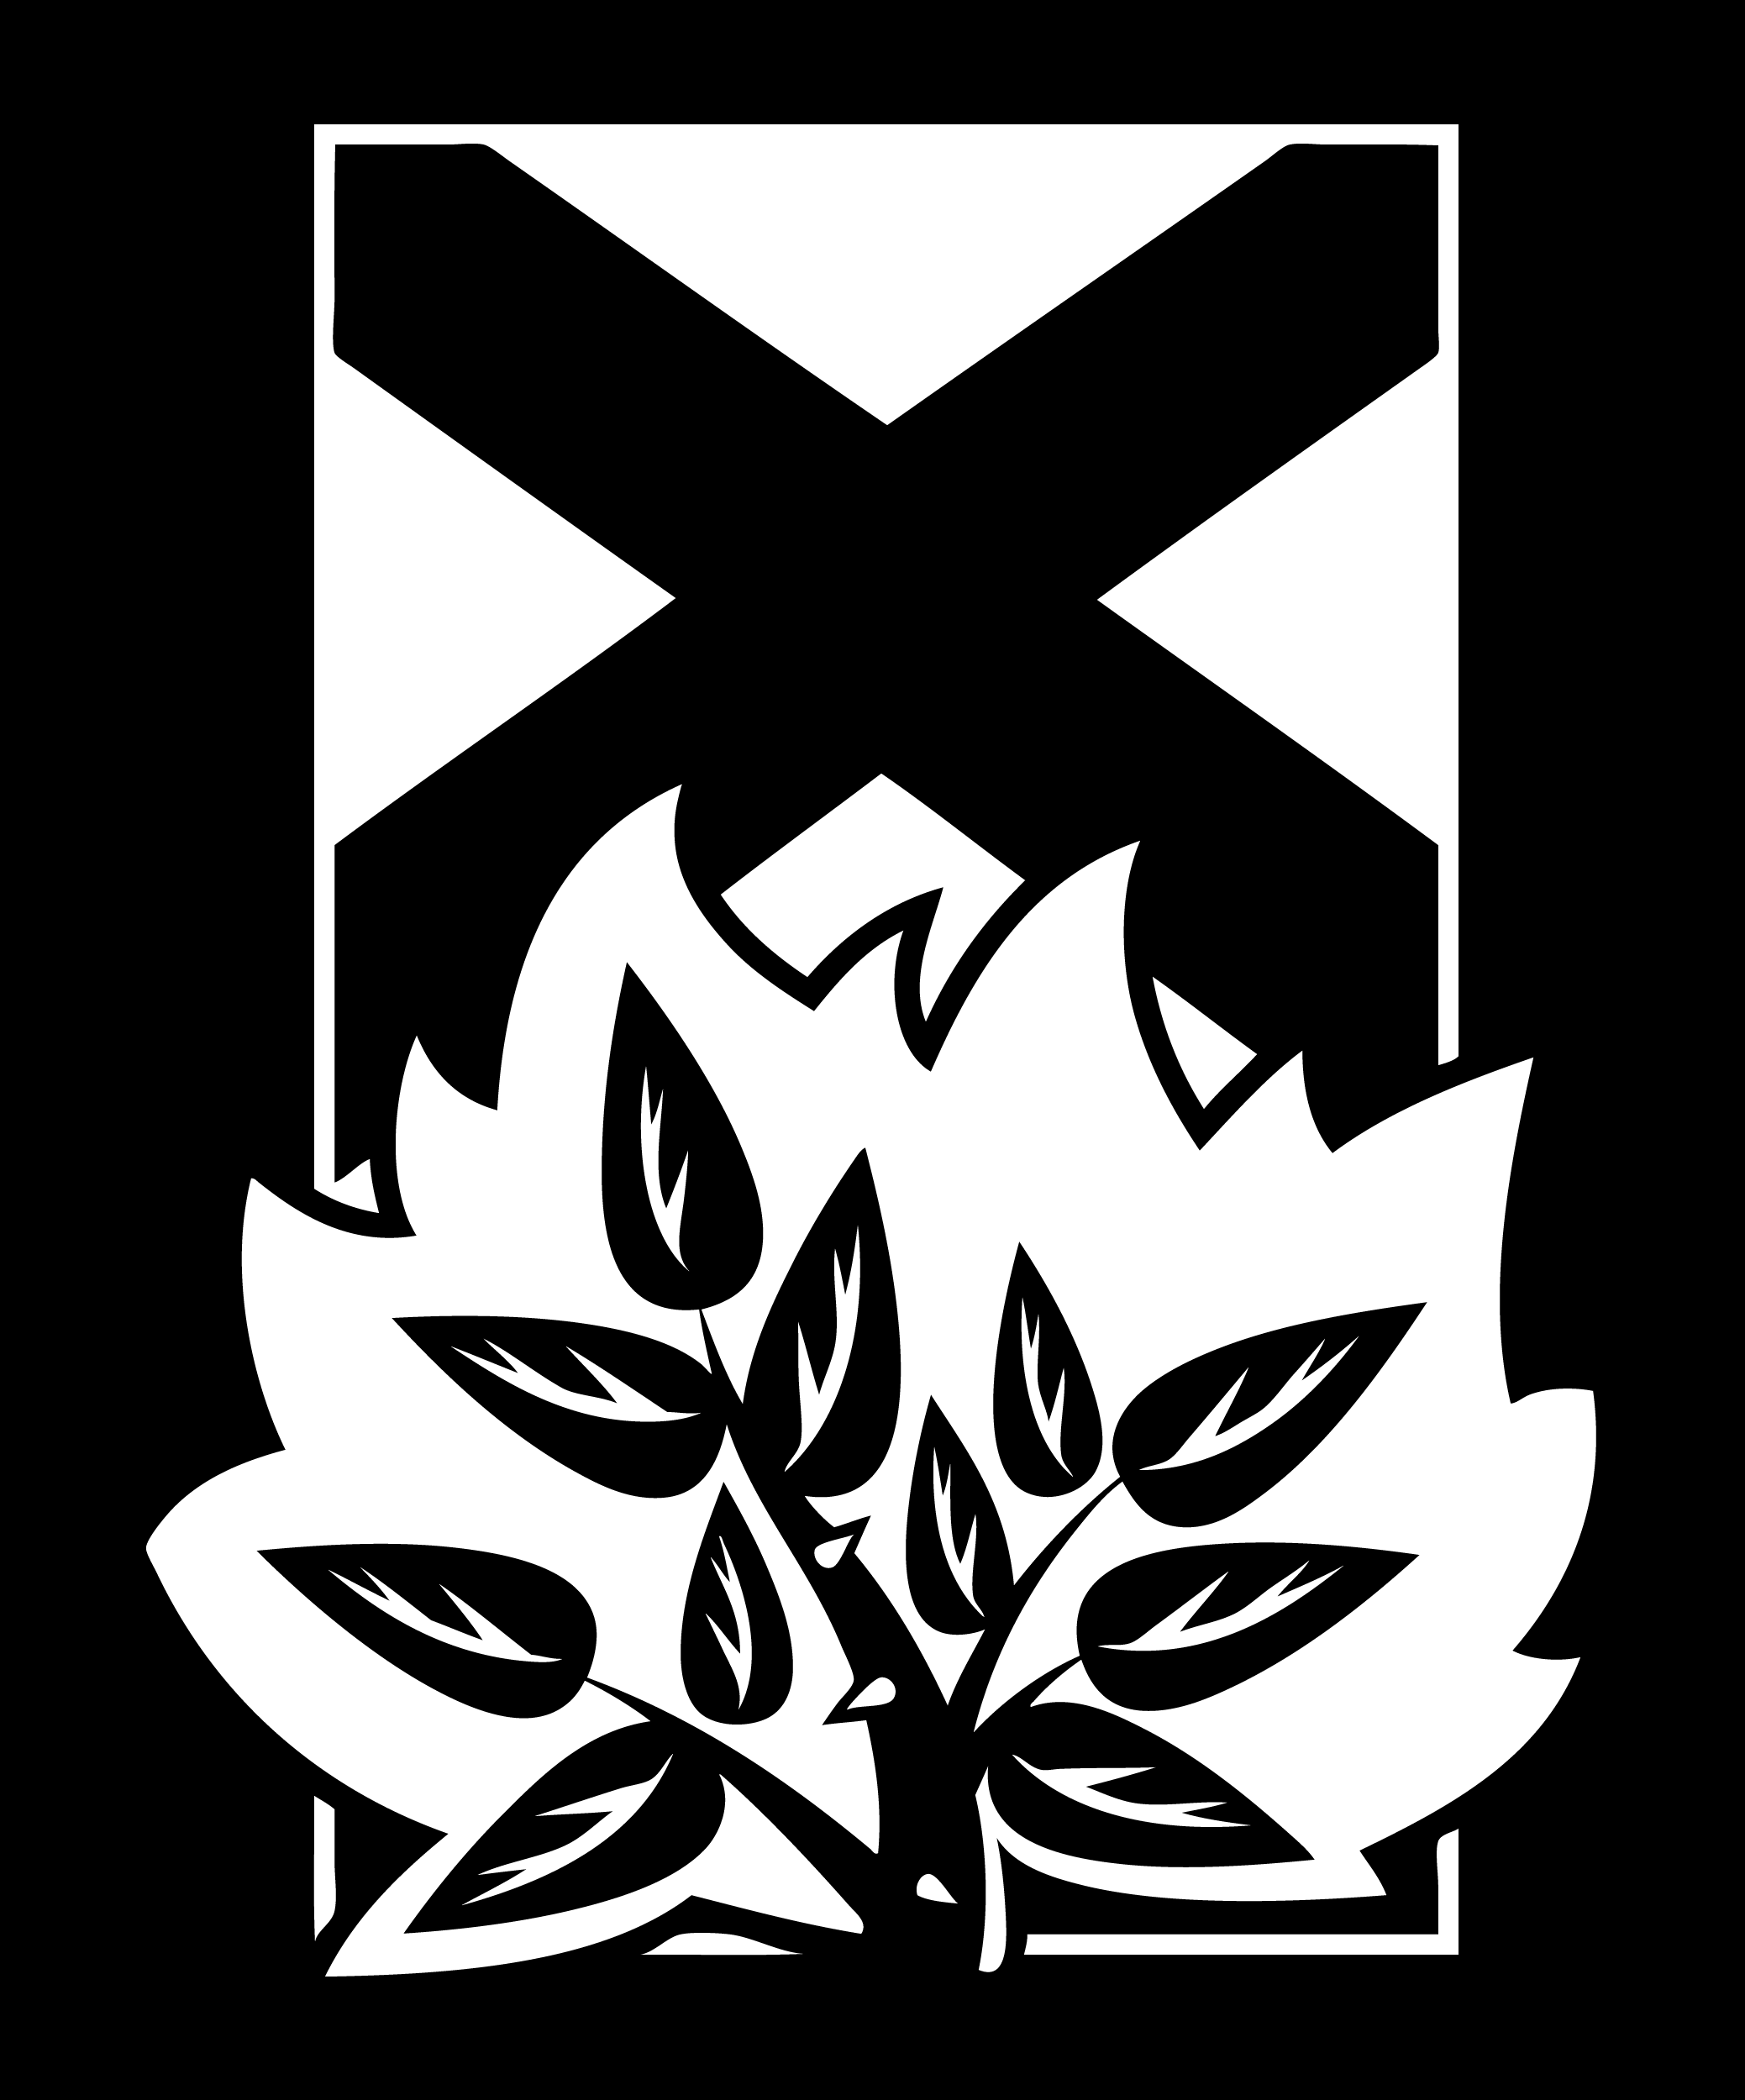 ChurchOfScotland Club Crest